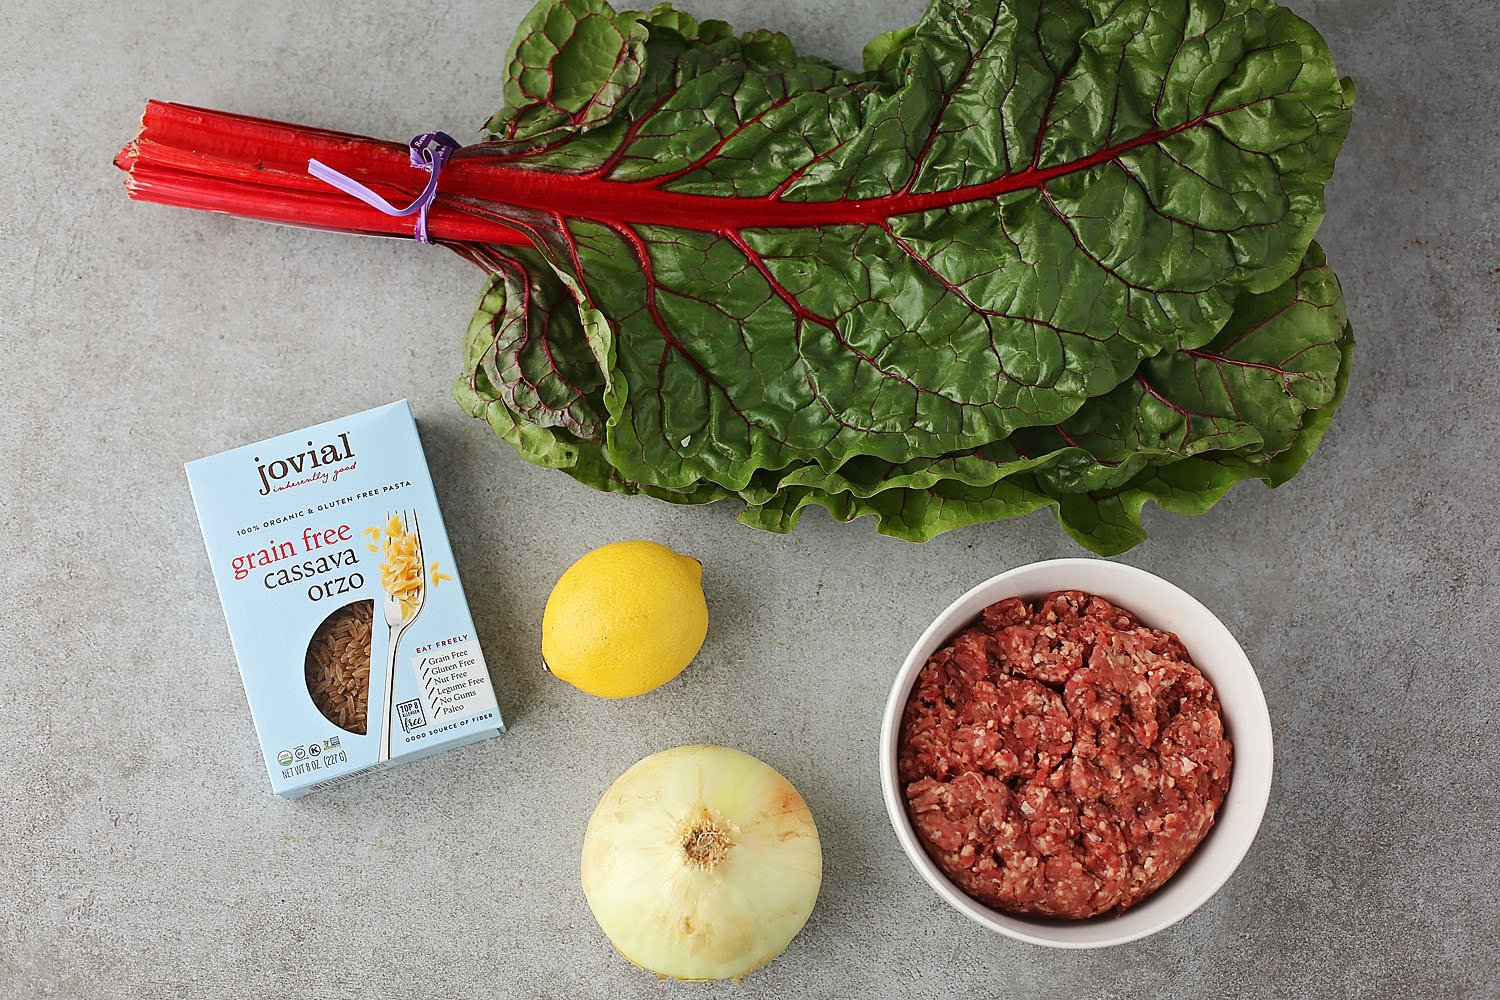 ingredients for the chard soup